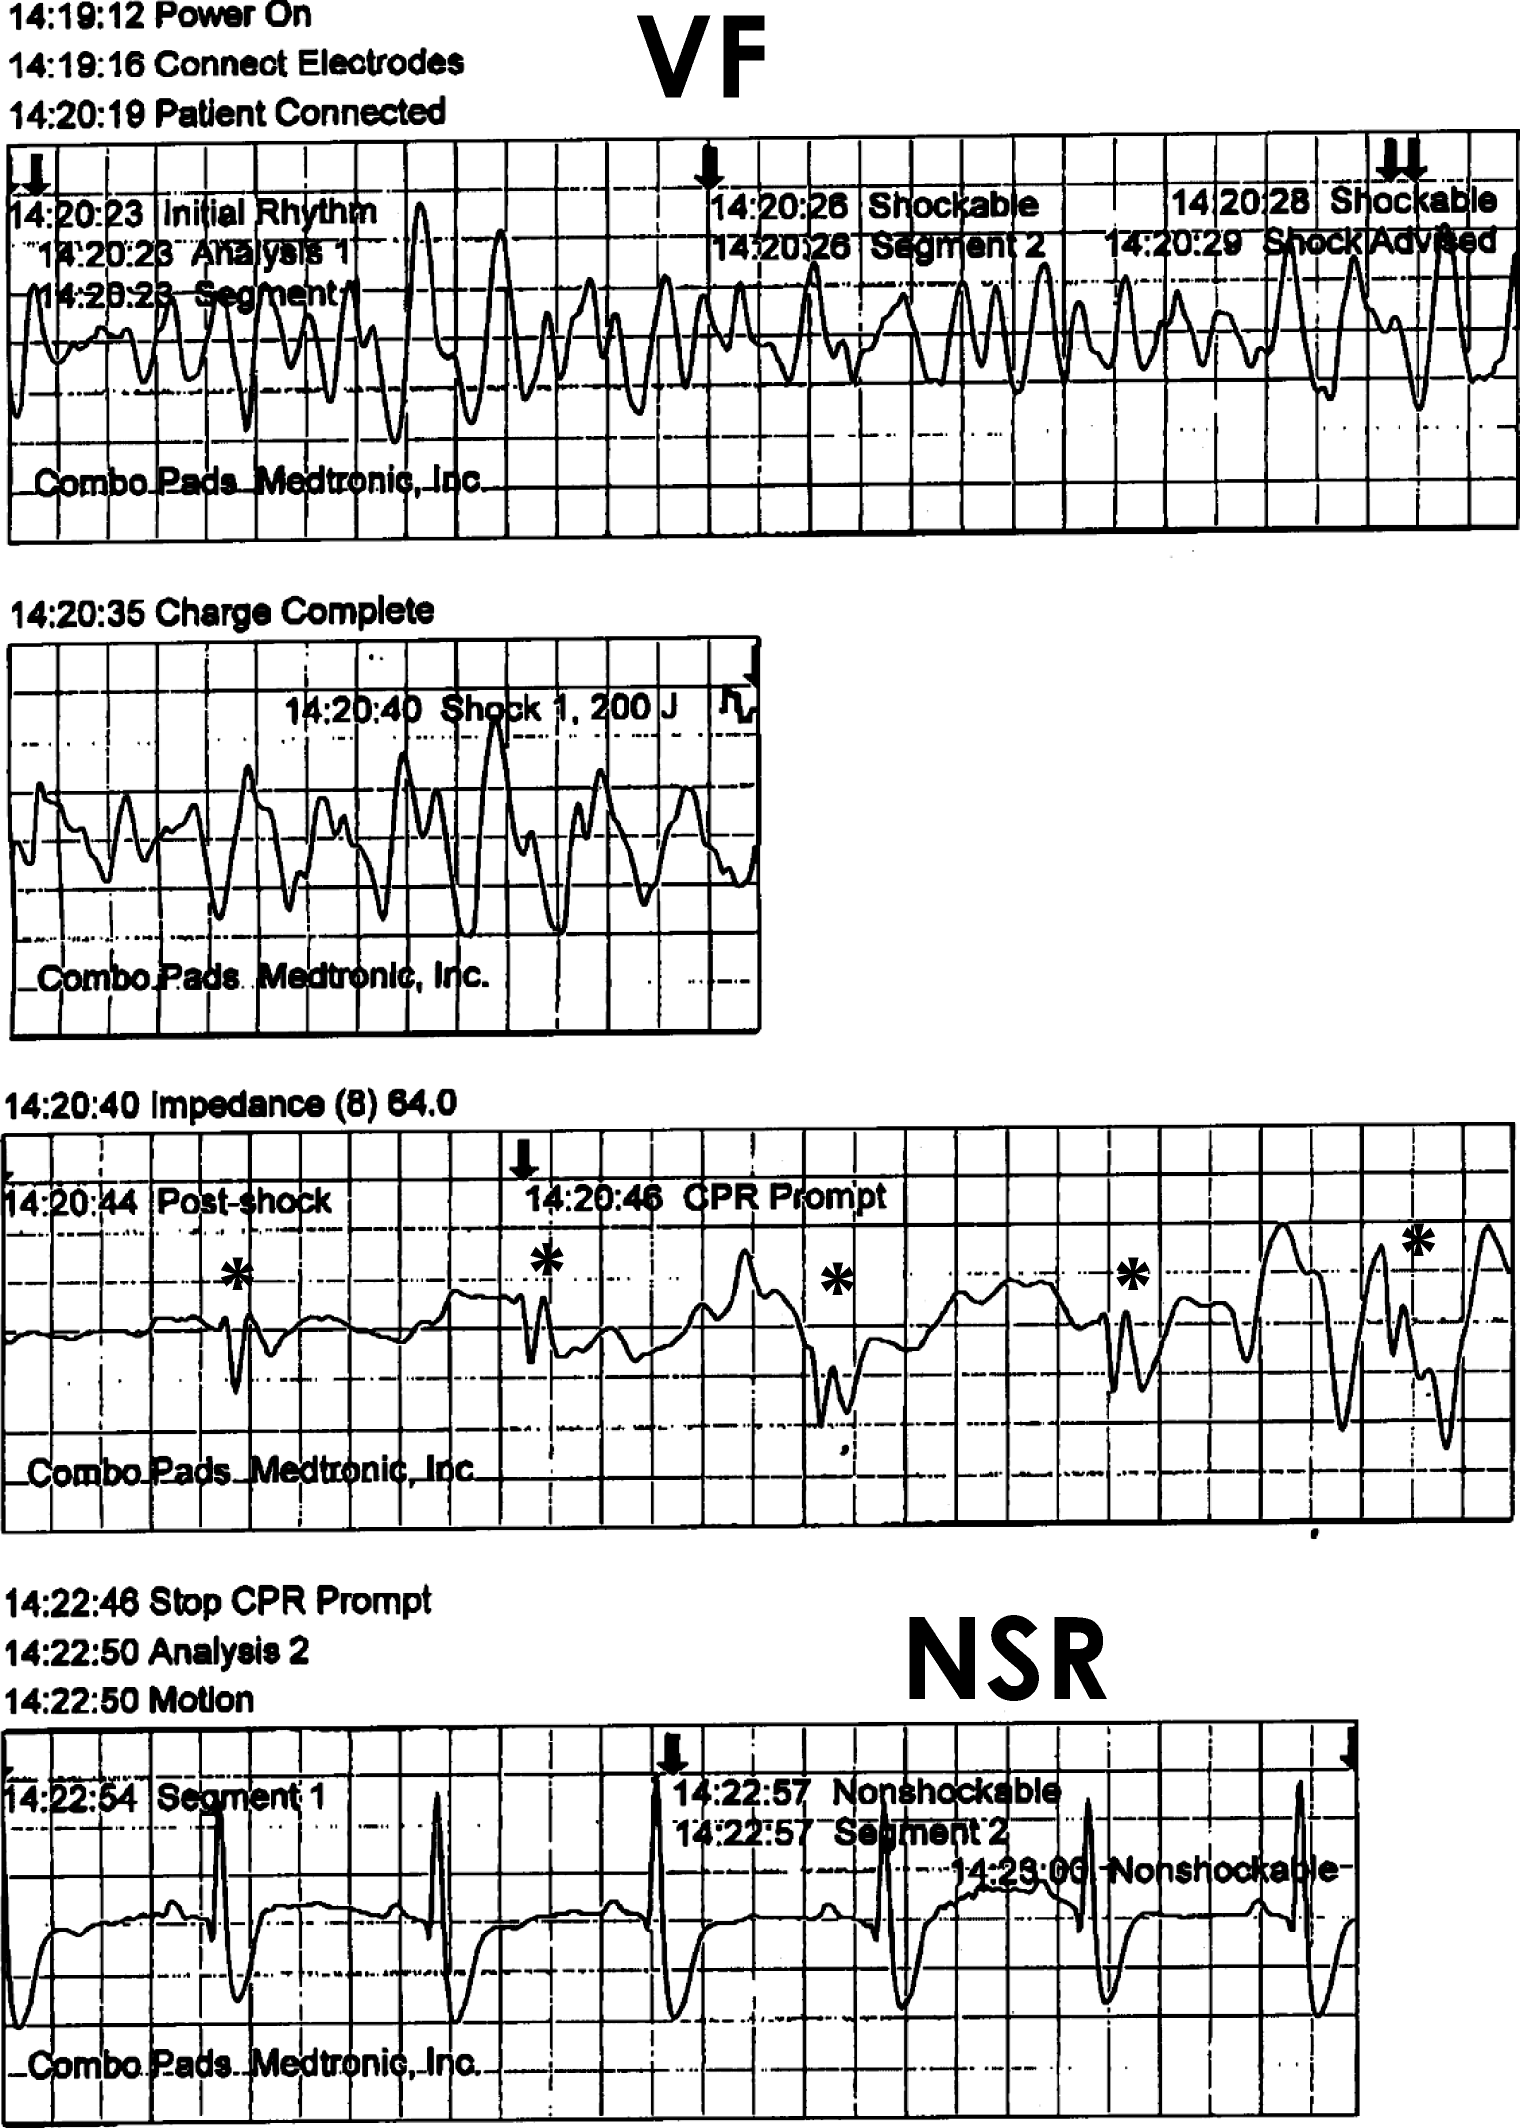 Significance of automated external defibrillator in identifying